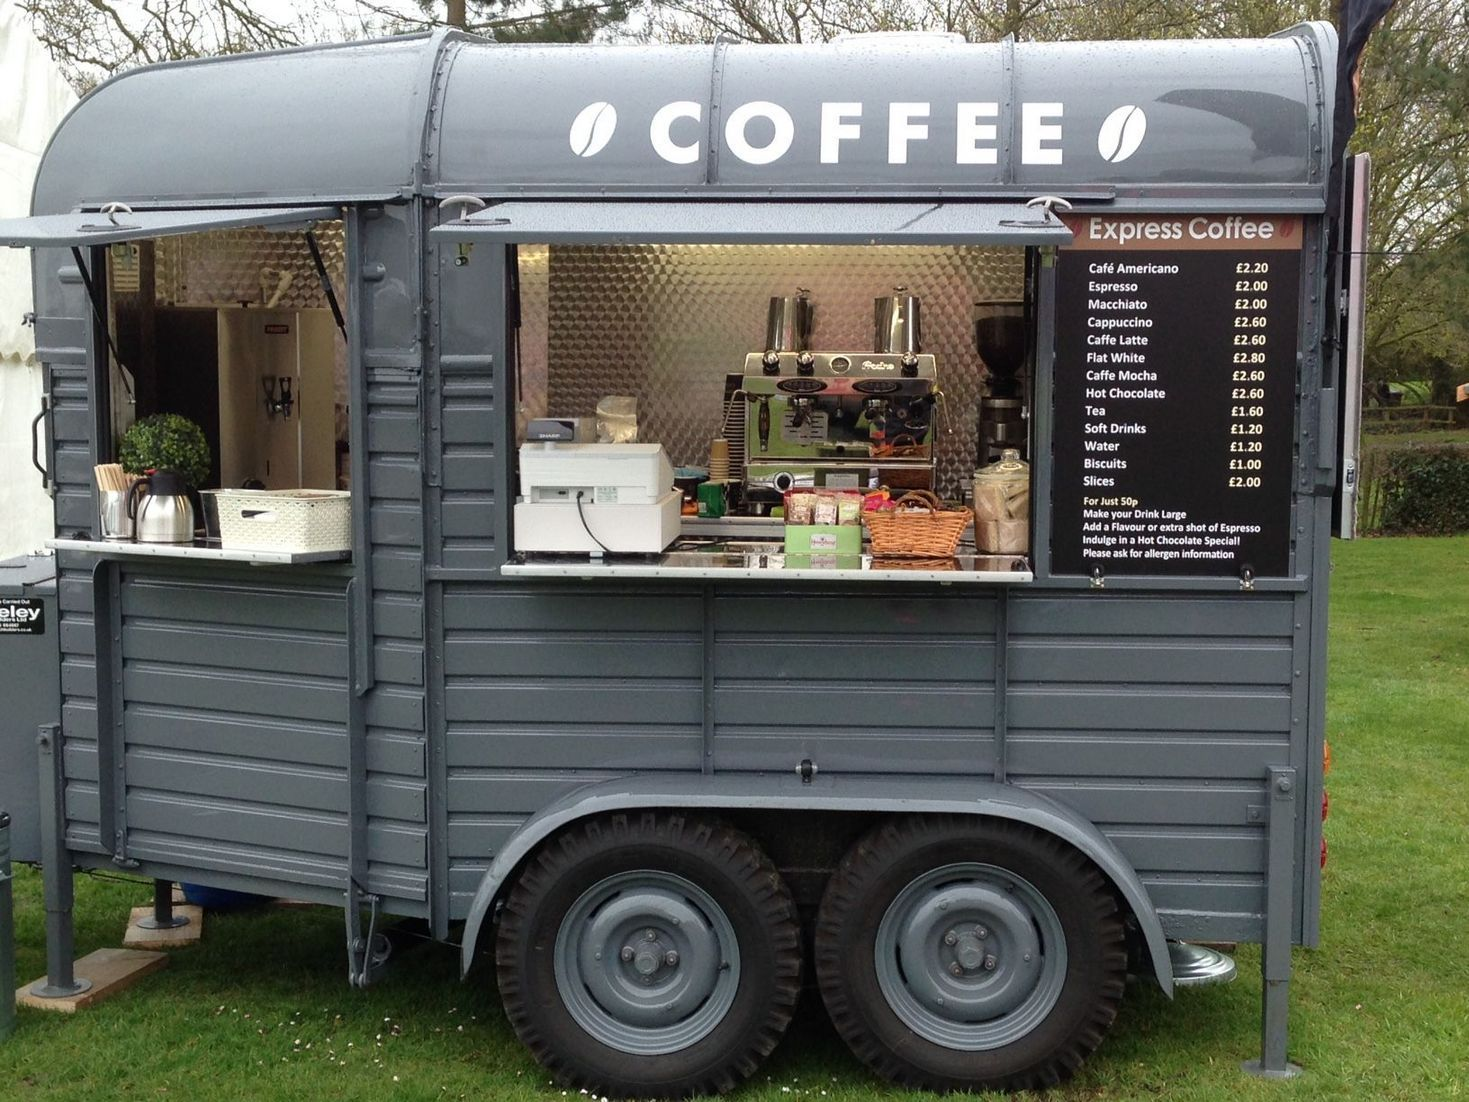 25 Creative Mini Bar Ideas To Inspire For Your Party Manlikemarvinsparks Com Coffee Trailer Mobile Coffee Shop Coffee Truck